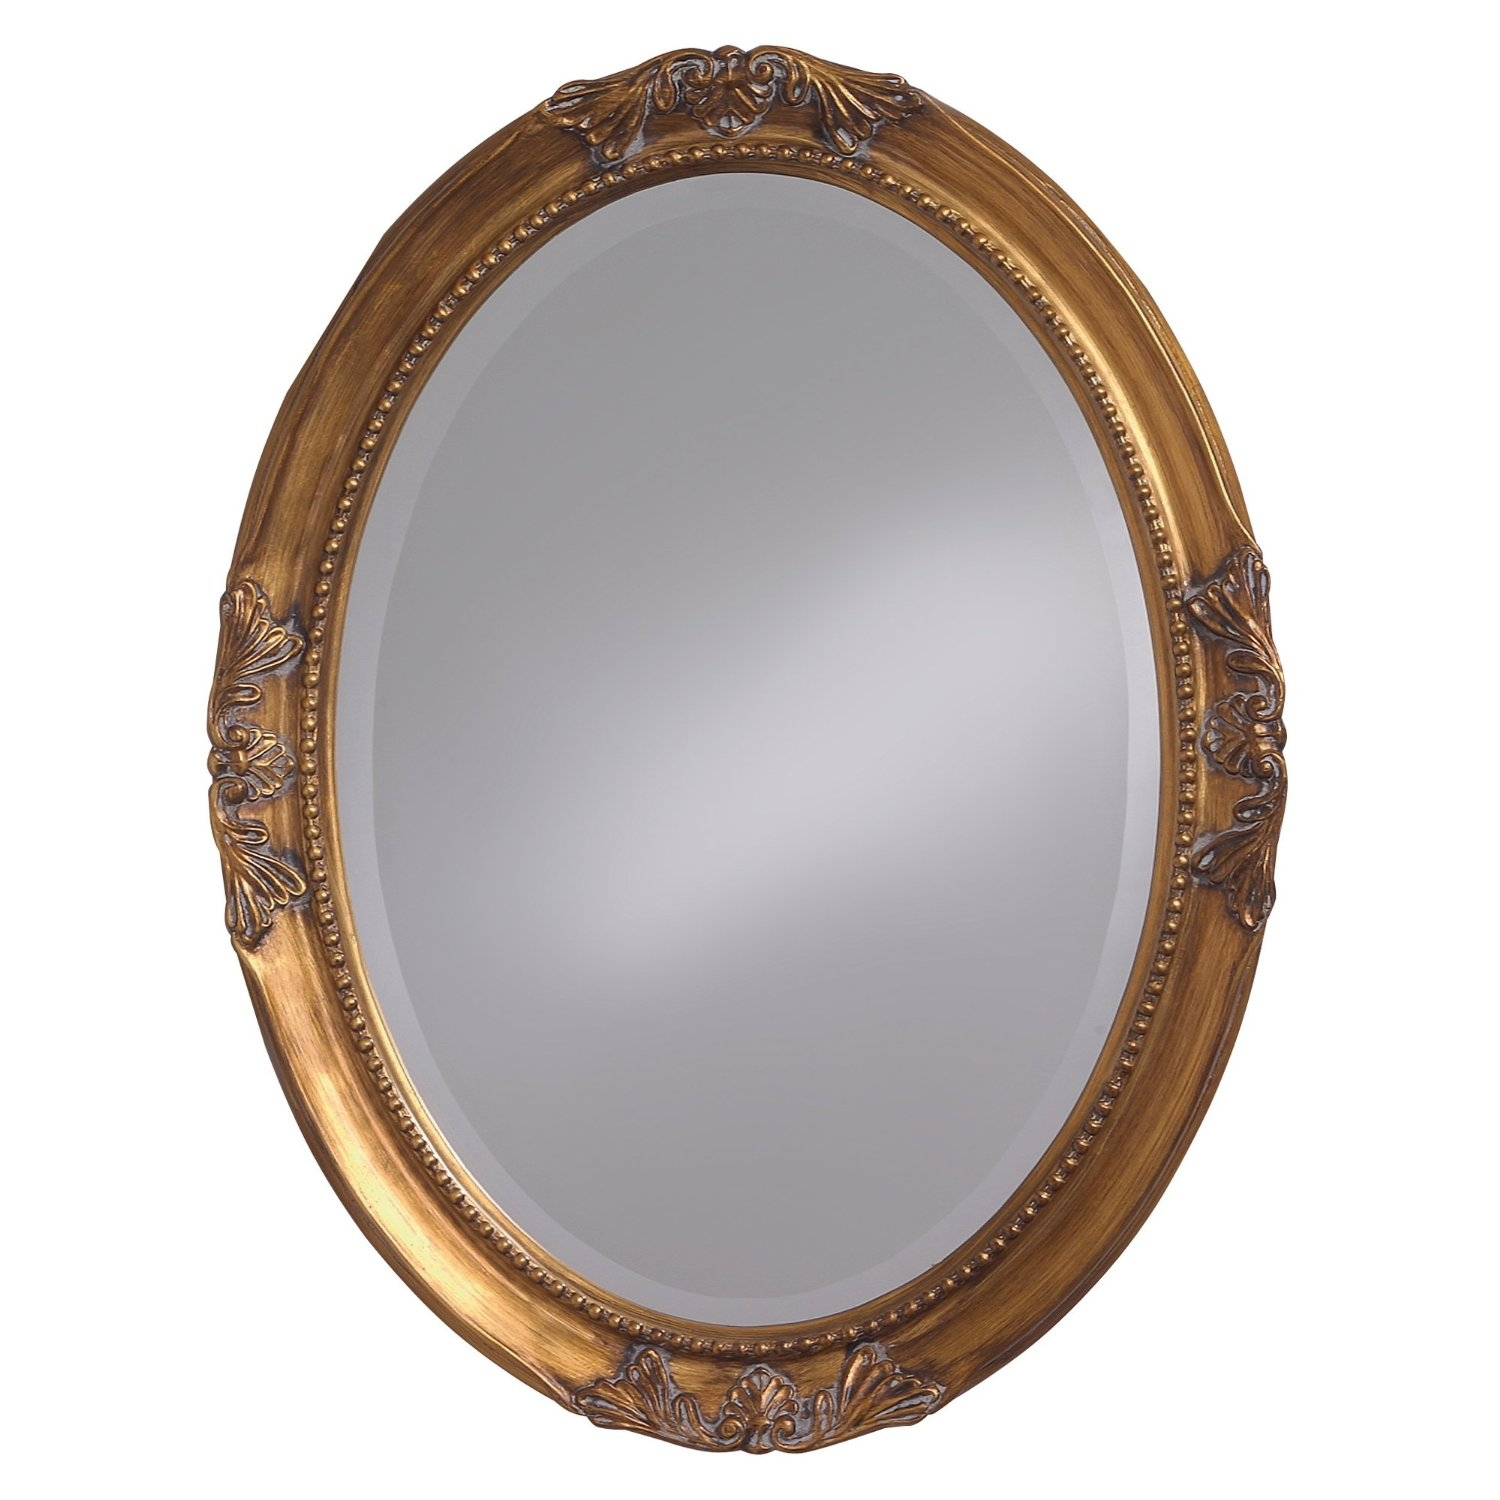 16 Ornate Mirrors For Your Home Qosy With Regard To Antique Round Mirrors (View 12 of 15)